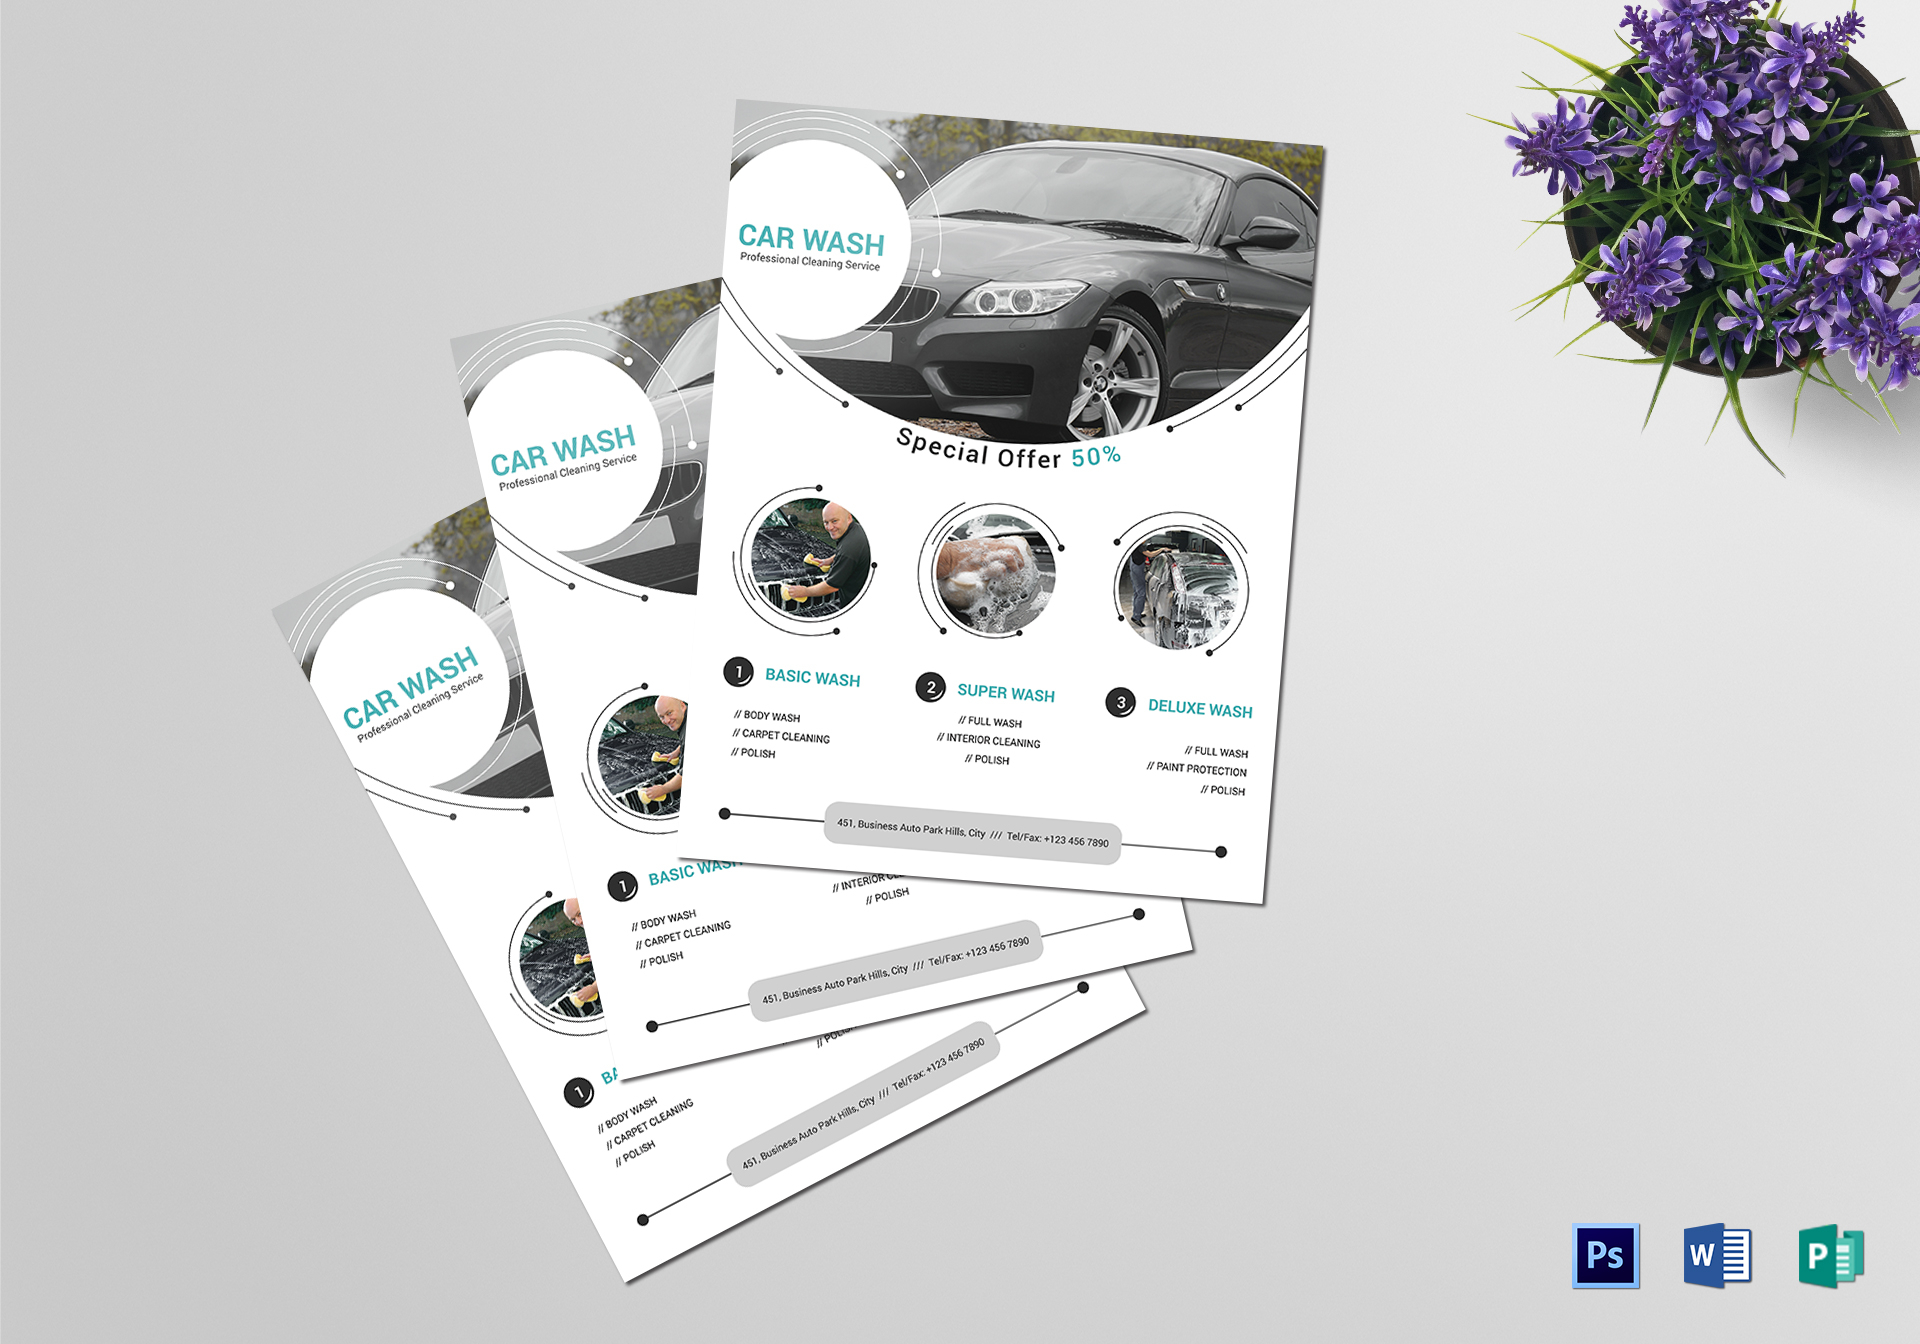 Car Washing Service Flyer Design Template in Word, PSD, Publisher